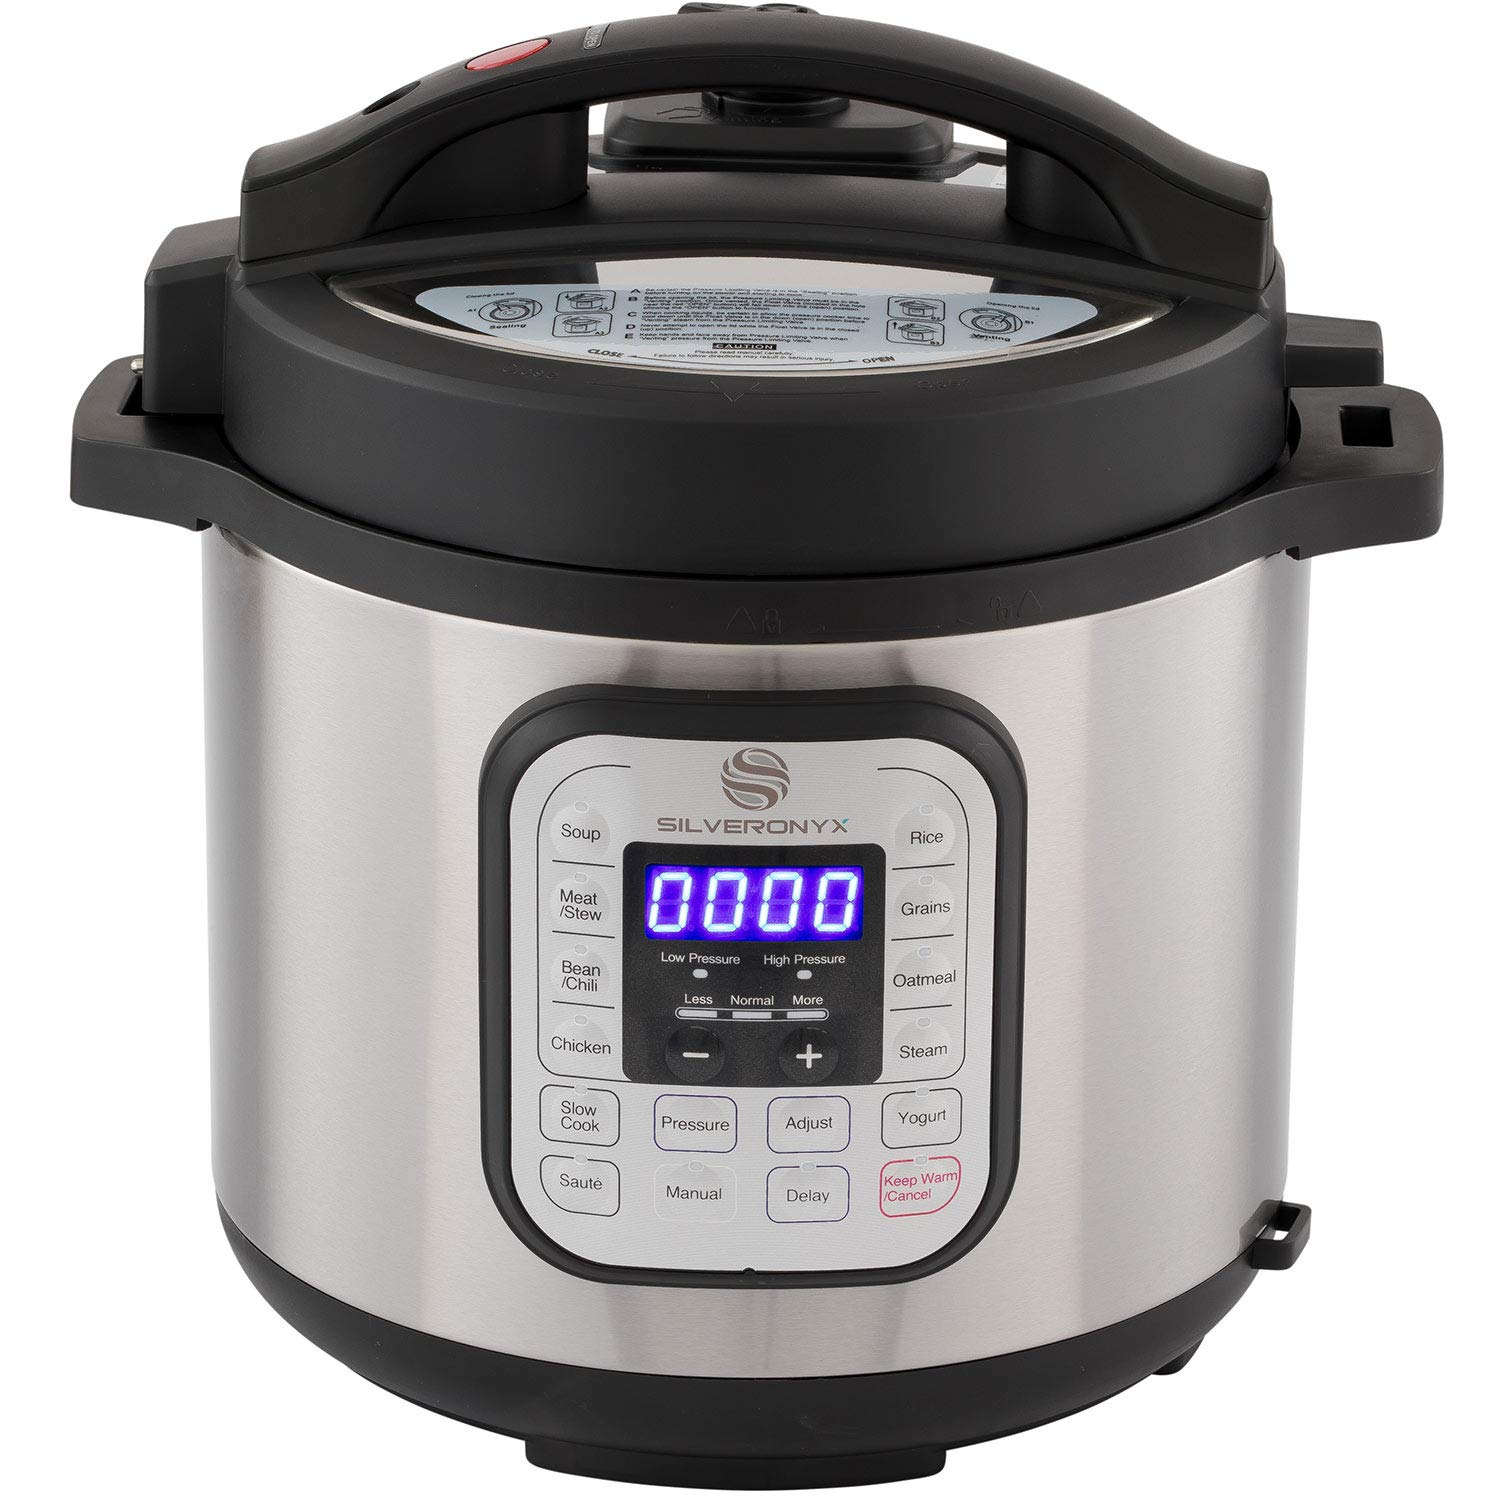 SilverOnyx 10-in-1 Programmable Instant Pressure Cooker 6 Quarts with Stainless Steel Pot, Free Recipe Book Included. 1000 Watt Pressure, Slow Cook, Sauté, Rice Cooker, Yogurt, Steamer & Warmer